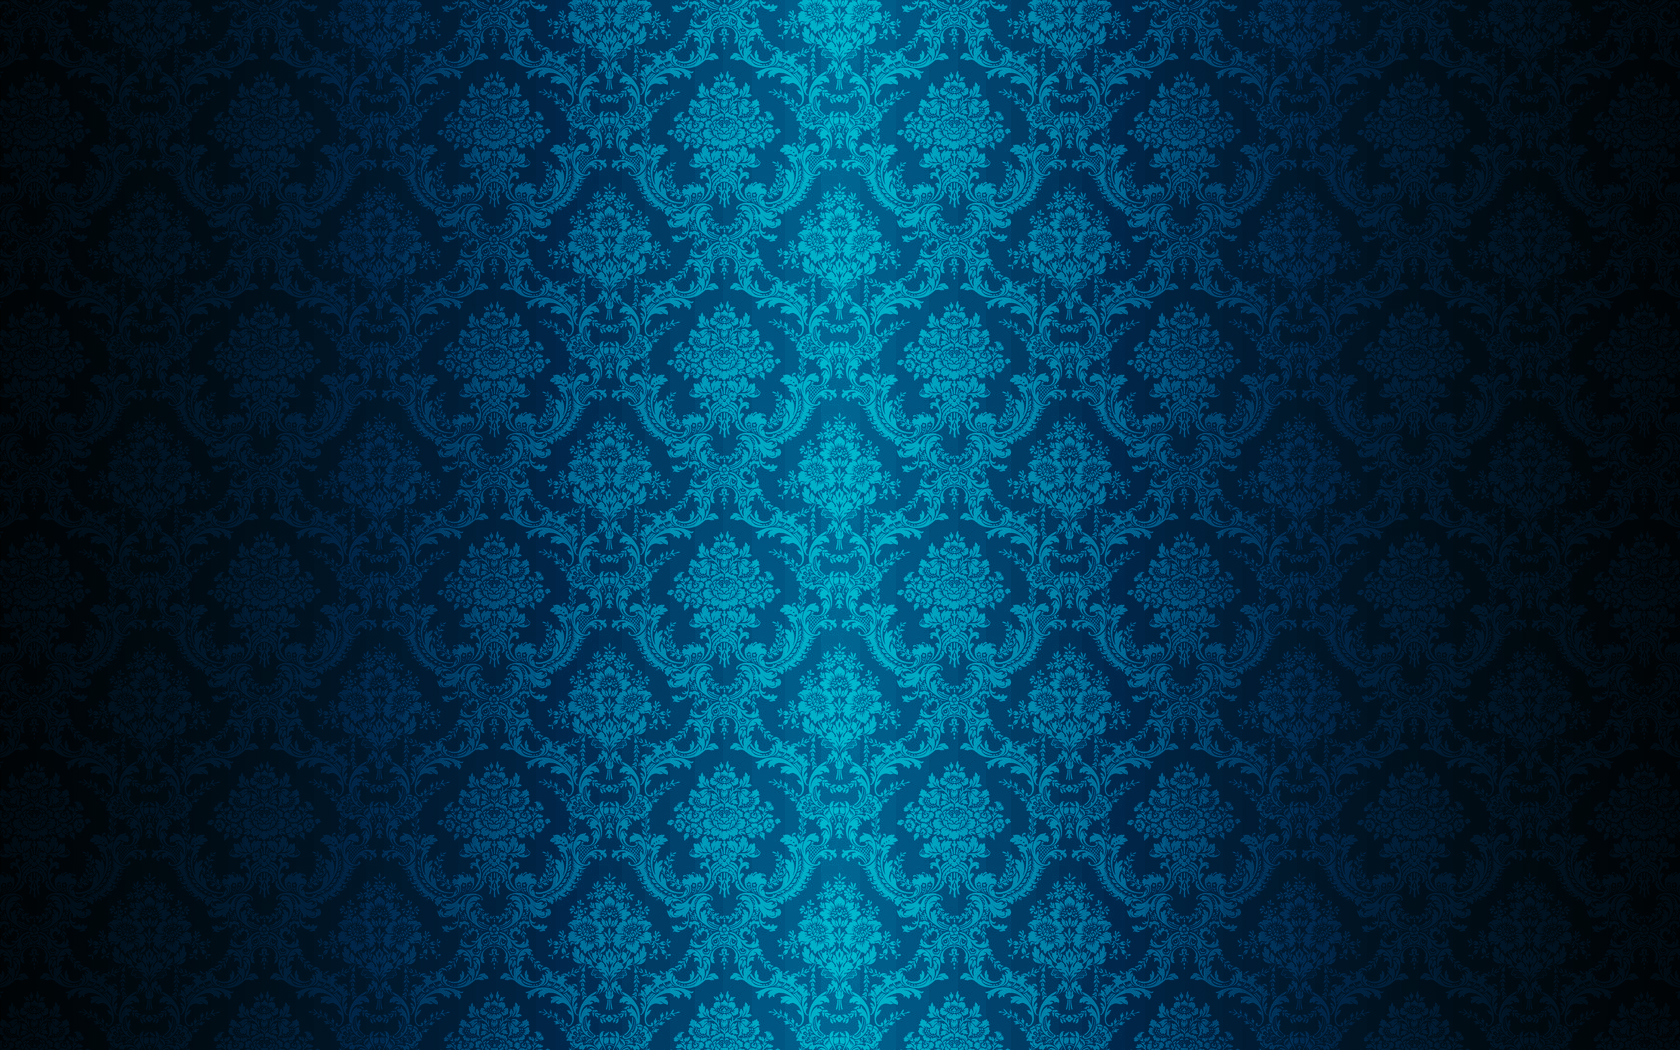 Damask Wallpaper VI By Flashingblade